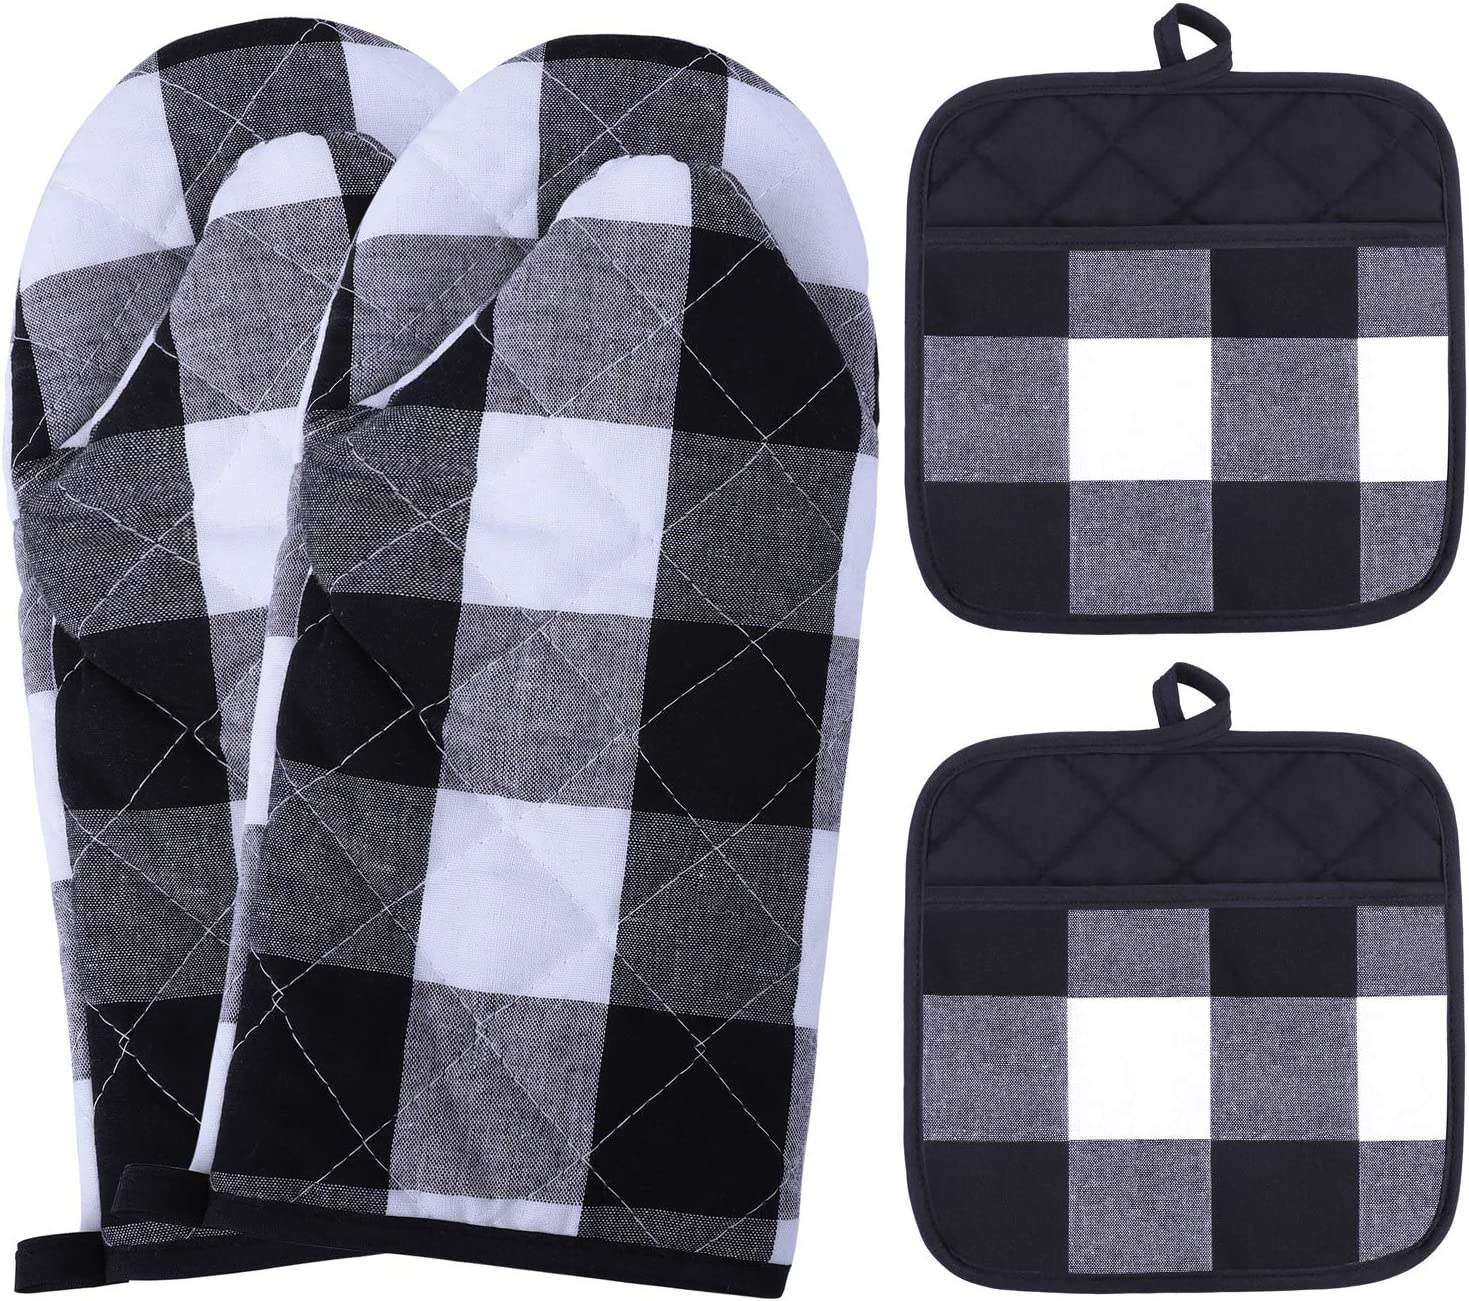 Aneco 4 Pack Buffalo Check Pot Holders Oven Mitts Kitchen Cotton Black and White Plaid Oven Mitts Pot Holders Set Kitchen Collection Check Plaid Gift Set